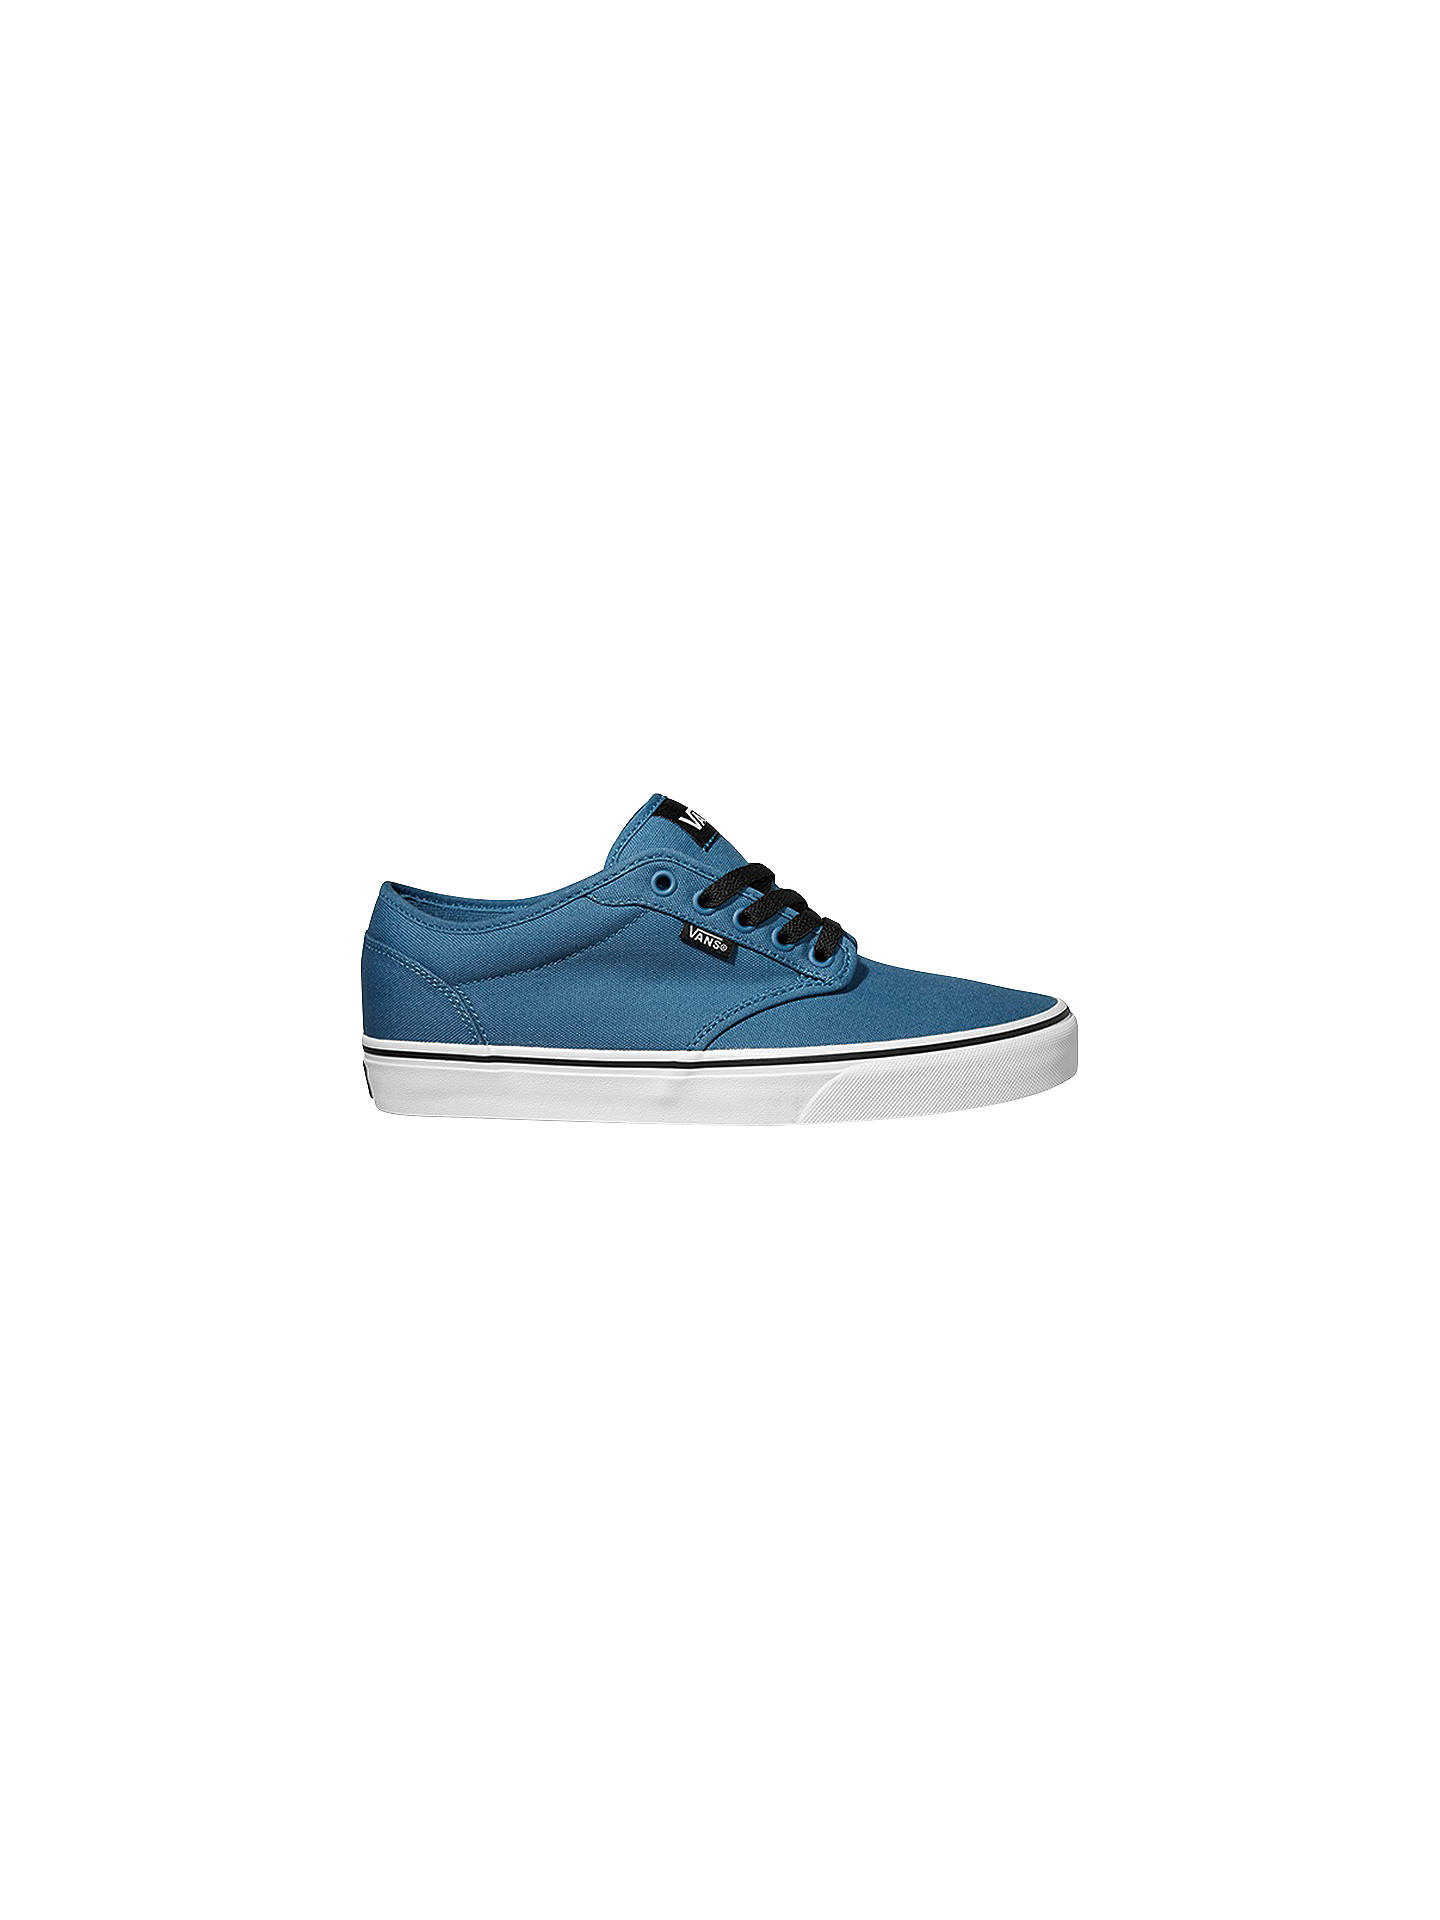 71fc6103bc7 Vans Atwood Canvas Trainers at John Lewis   Partners